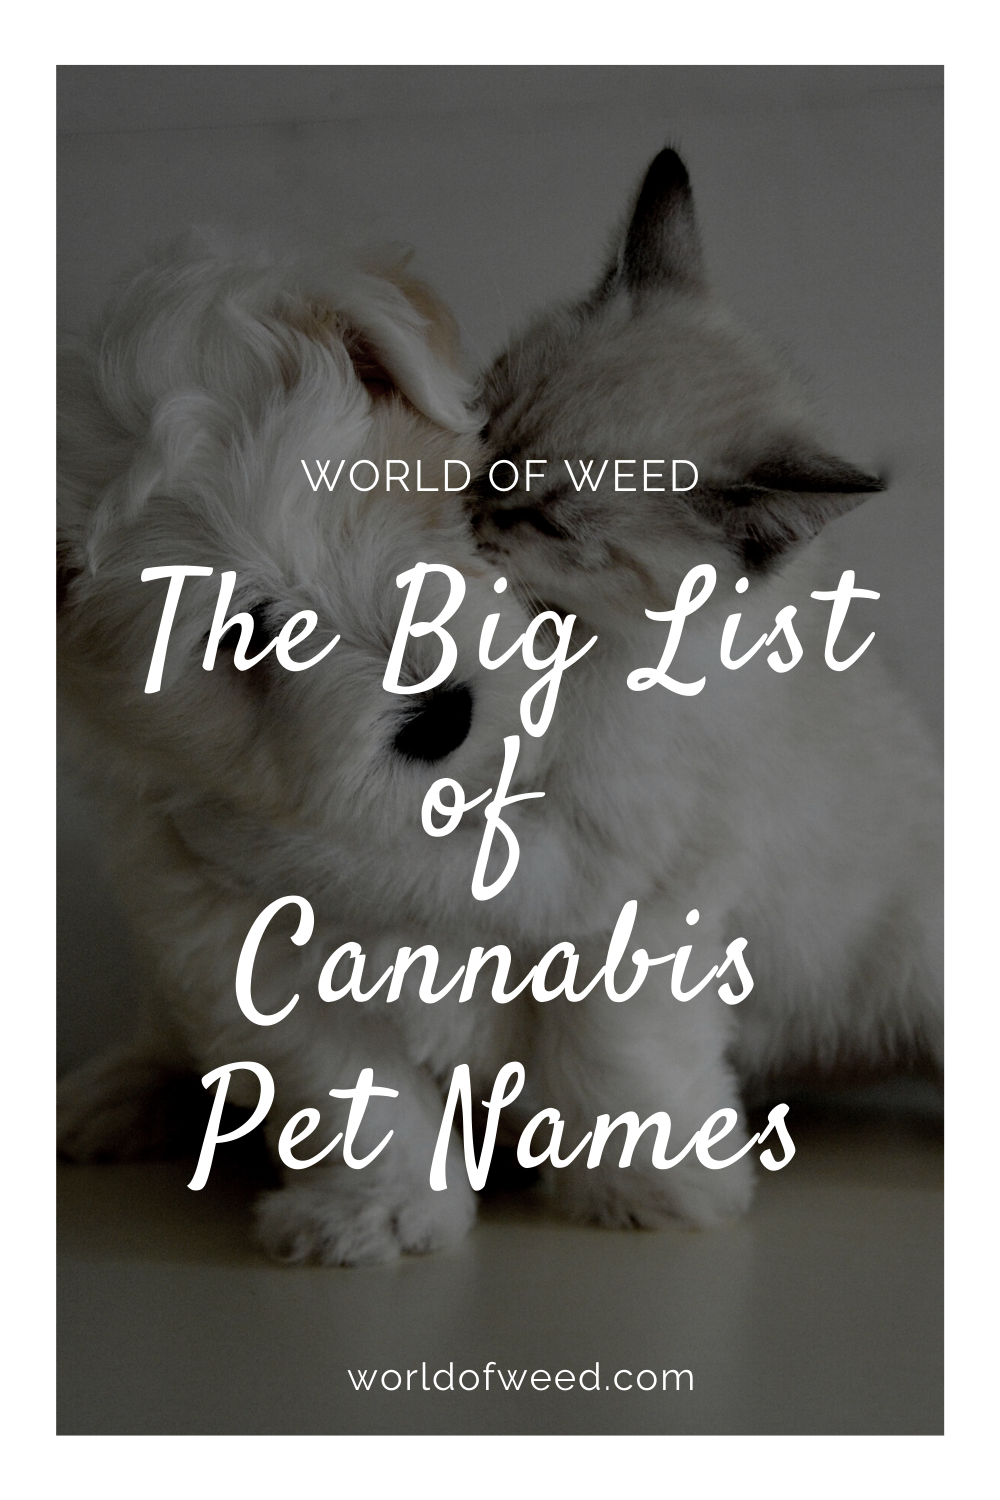 The Big List of Cannabis Pet Names